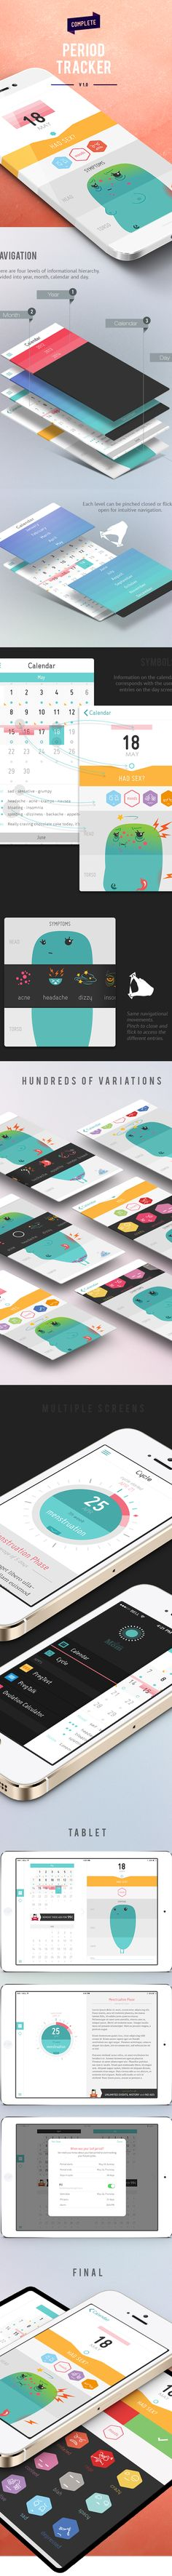 UI and UX design plays a huge role in whether people adopt your mobile apps. Here, we roundup 7 mobile UI design inspiration part 10 are compiled to give inspiration to you and other UI/UX design… Tracker Mood, Period Tracker App, Interaktives Design, App Ui Design, Design Layouts, Flat Design, Gui Interface, User Interface Design, Mobile Ui Design